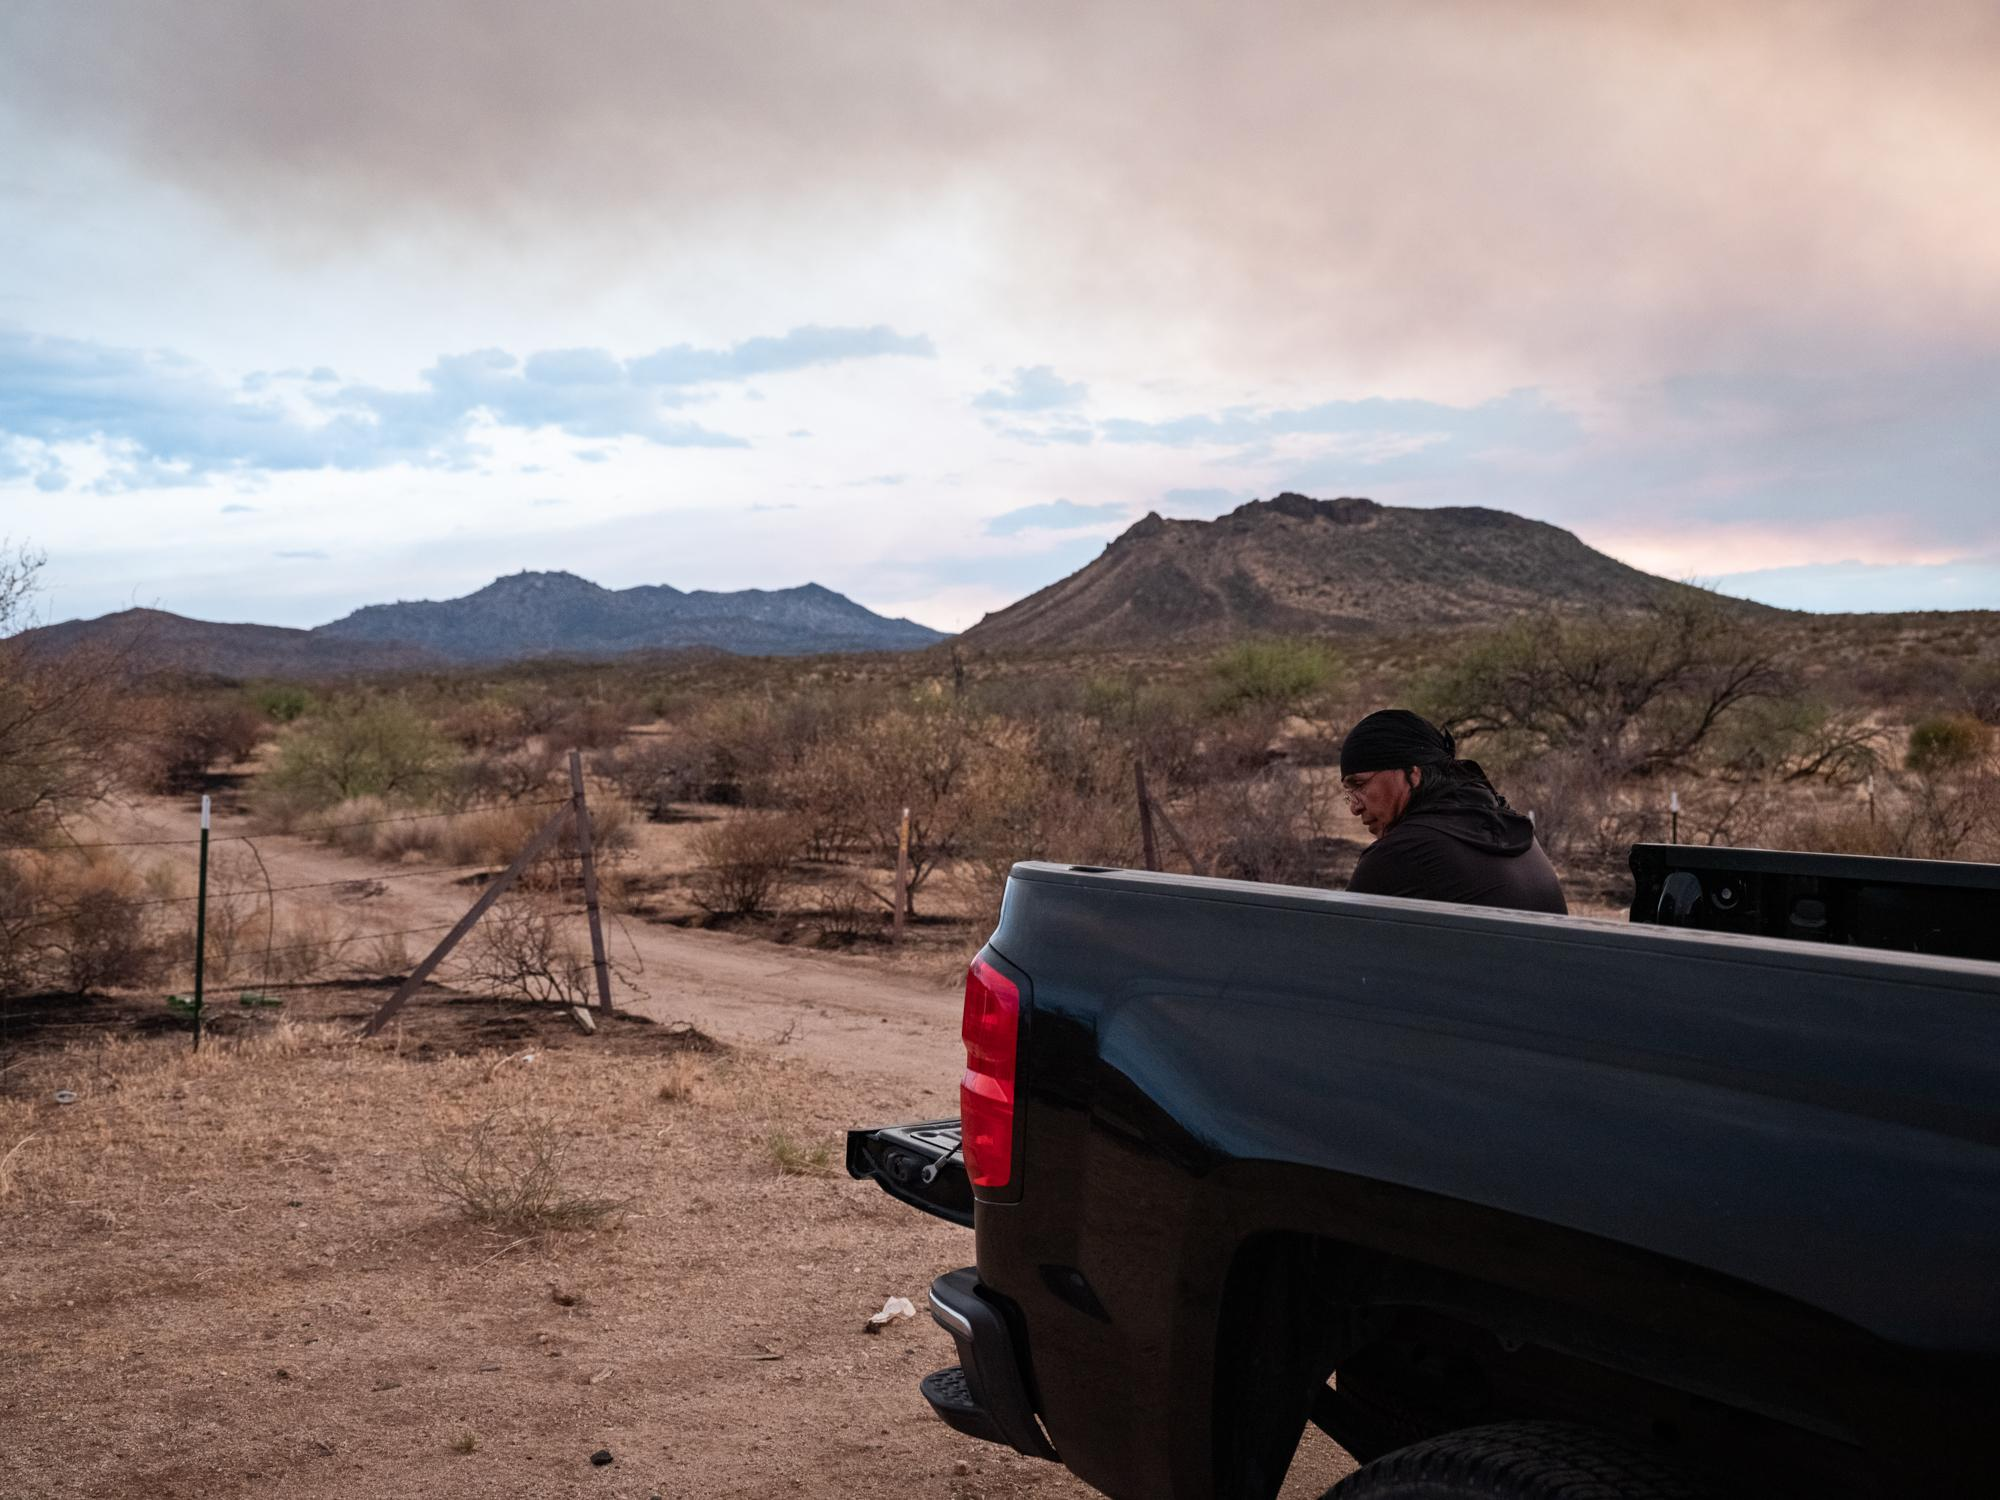 Dr. Wendsler Nosie Sr sits in the back of his truck on the San Carlos Apache Reservation following one of his daily runs to train for the Mt. Graham Sacred Run, with smoke in the air from the Mescal Fire raging nearby.